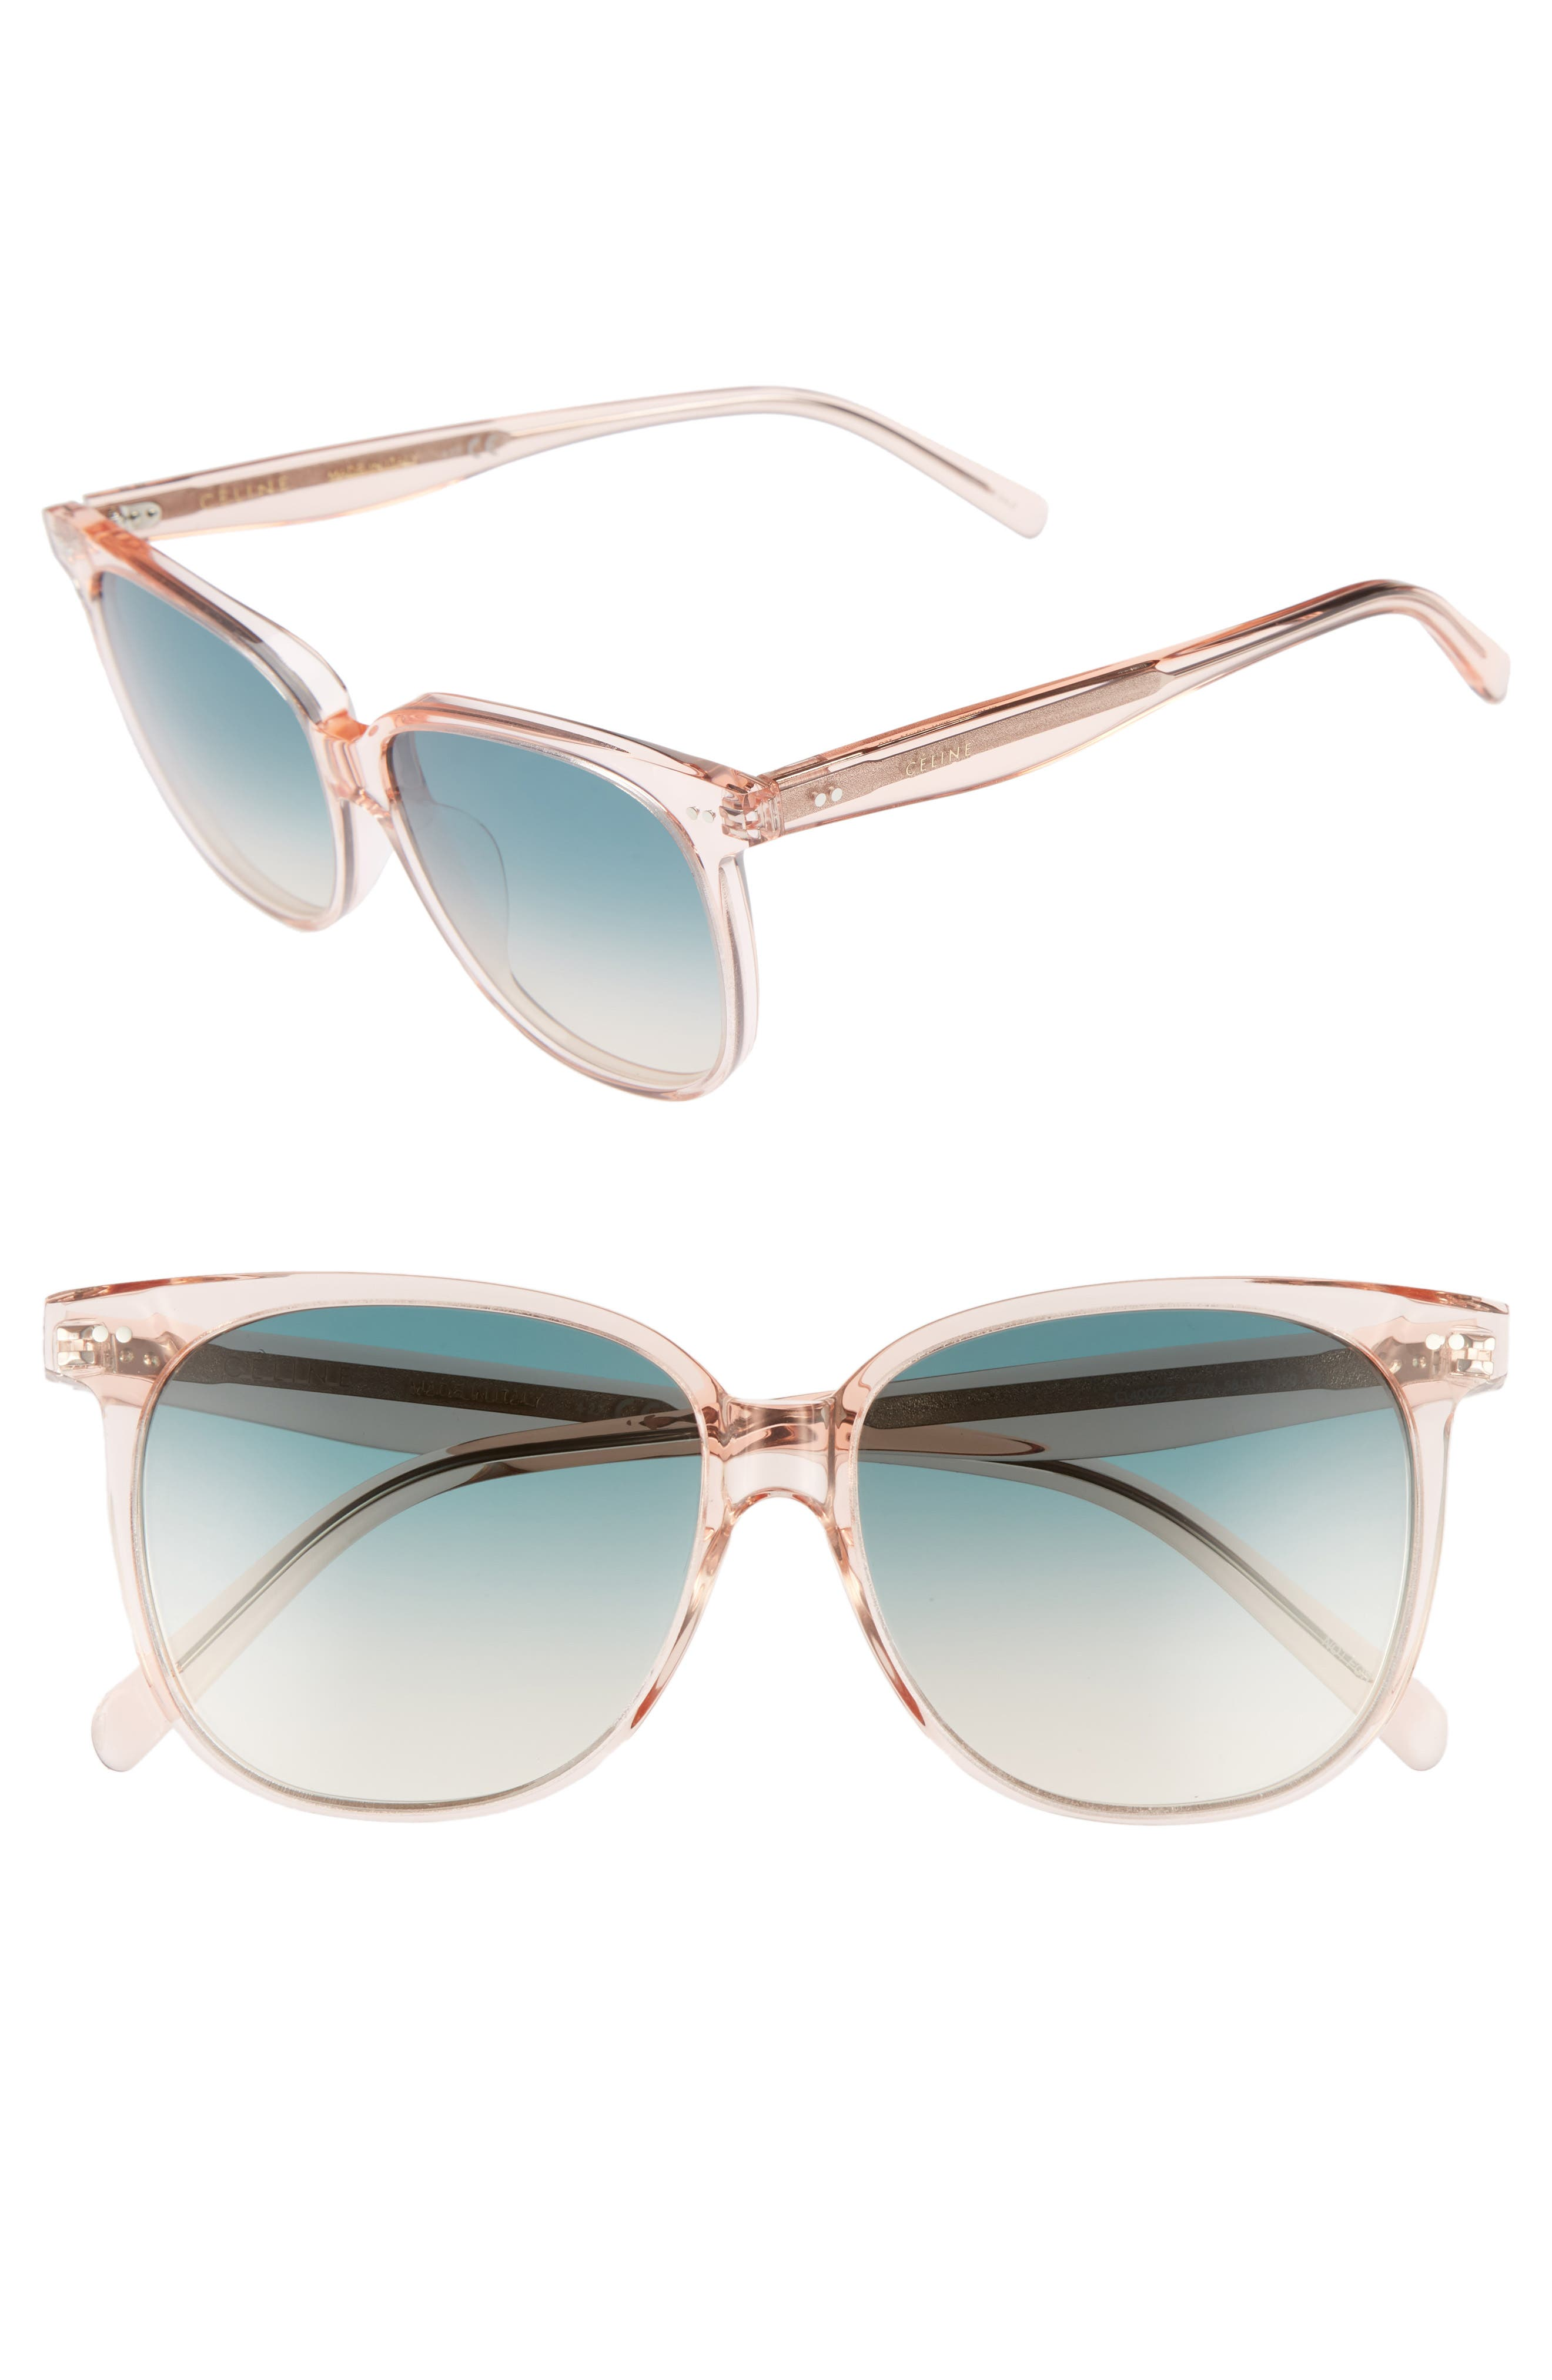 Special Fit 58mm Square Sunglasses,                             Main thumbnail 1, color,                             Baby Pink/ Turquoise